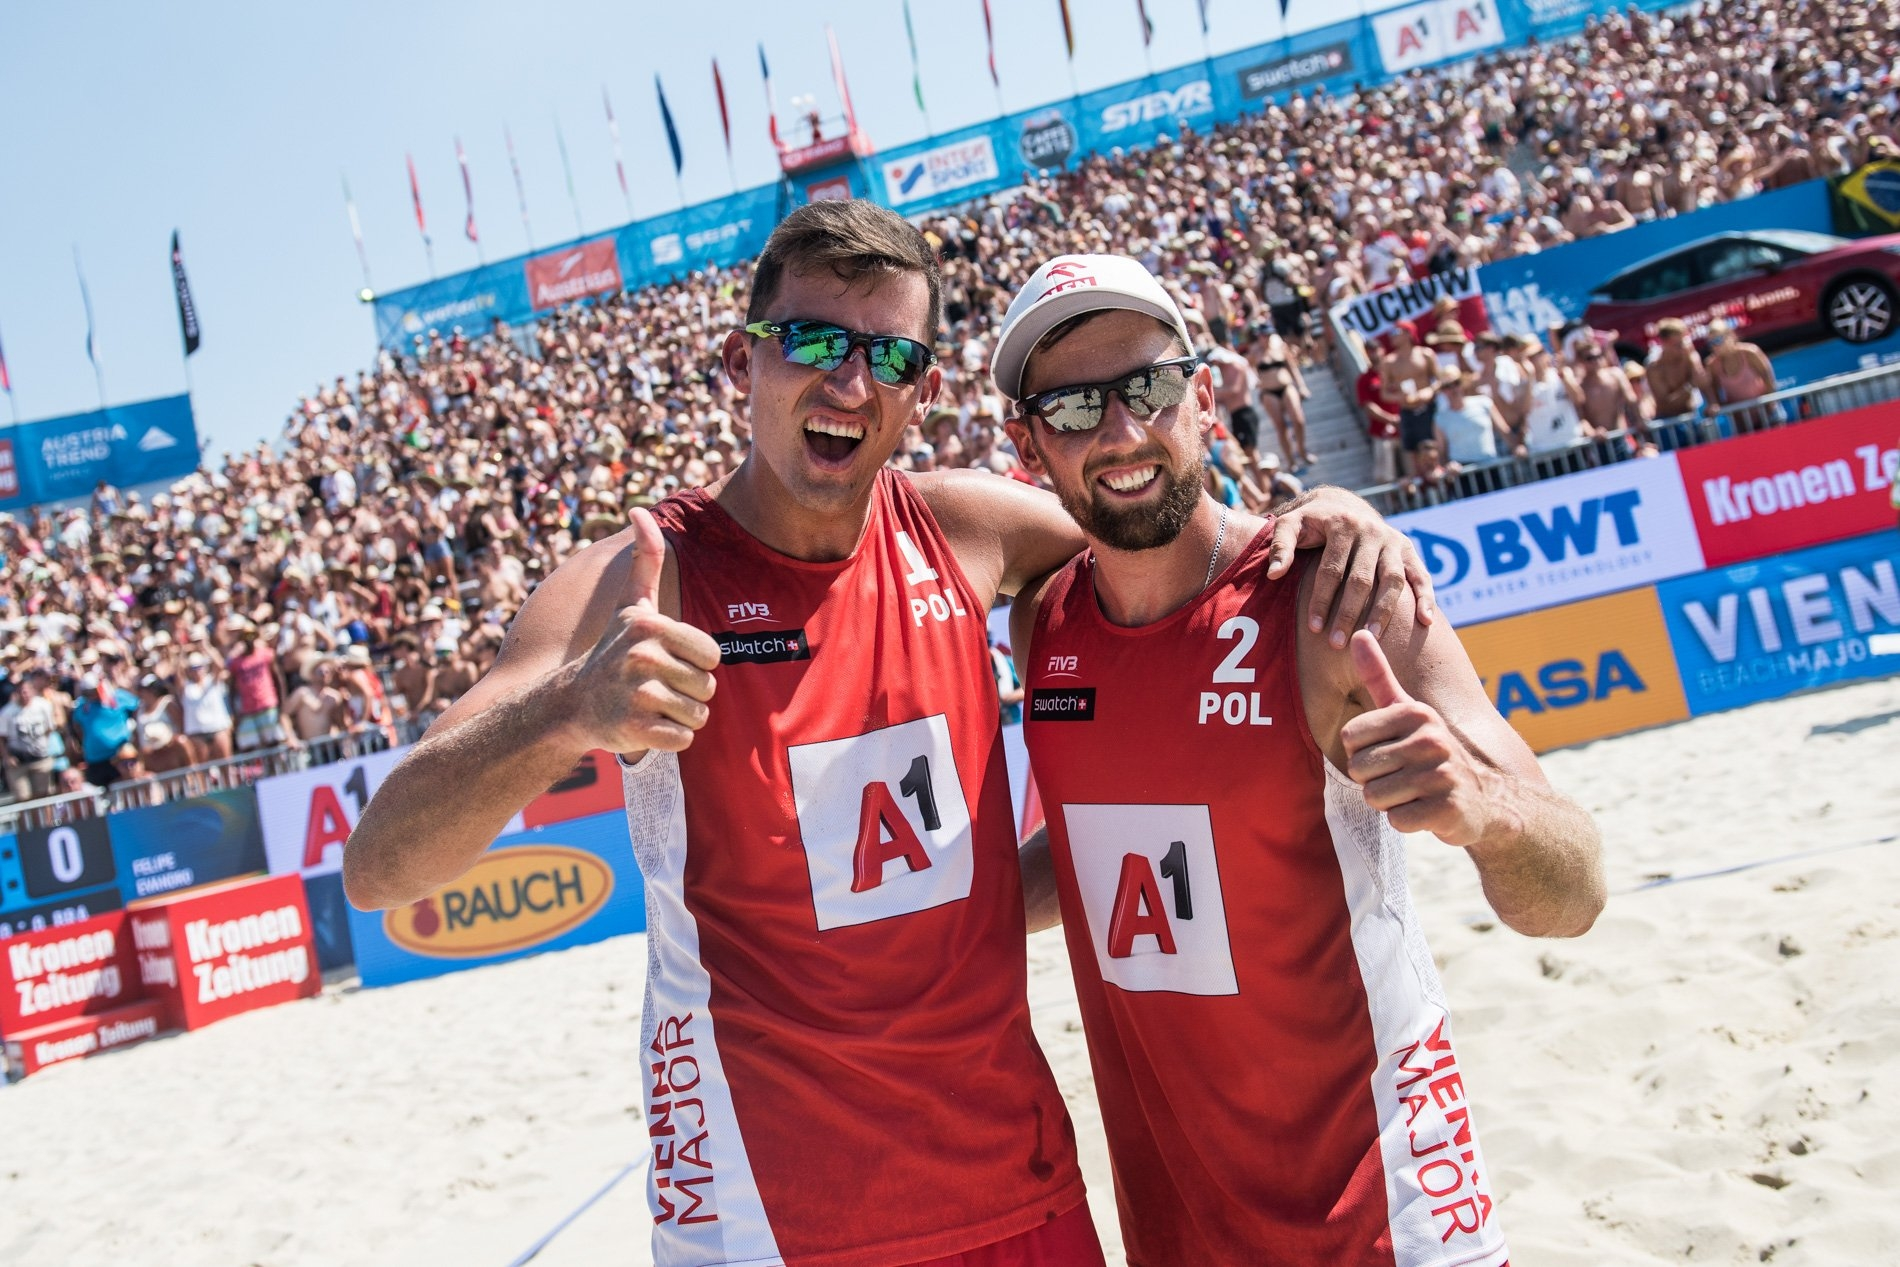 Bryl and Fijalek will play in their first gold medal match together